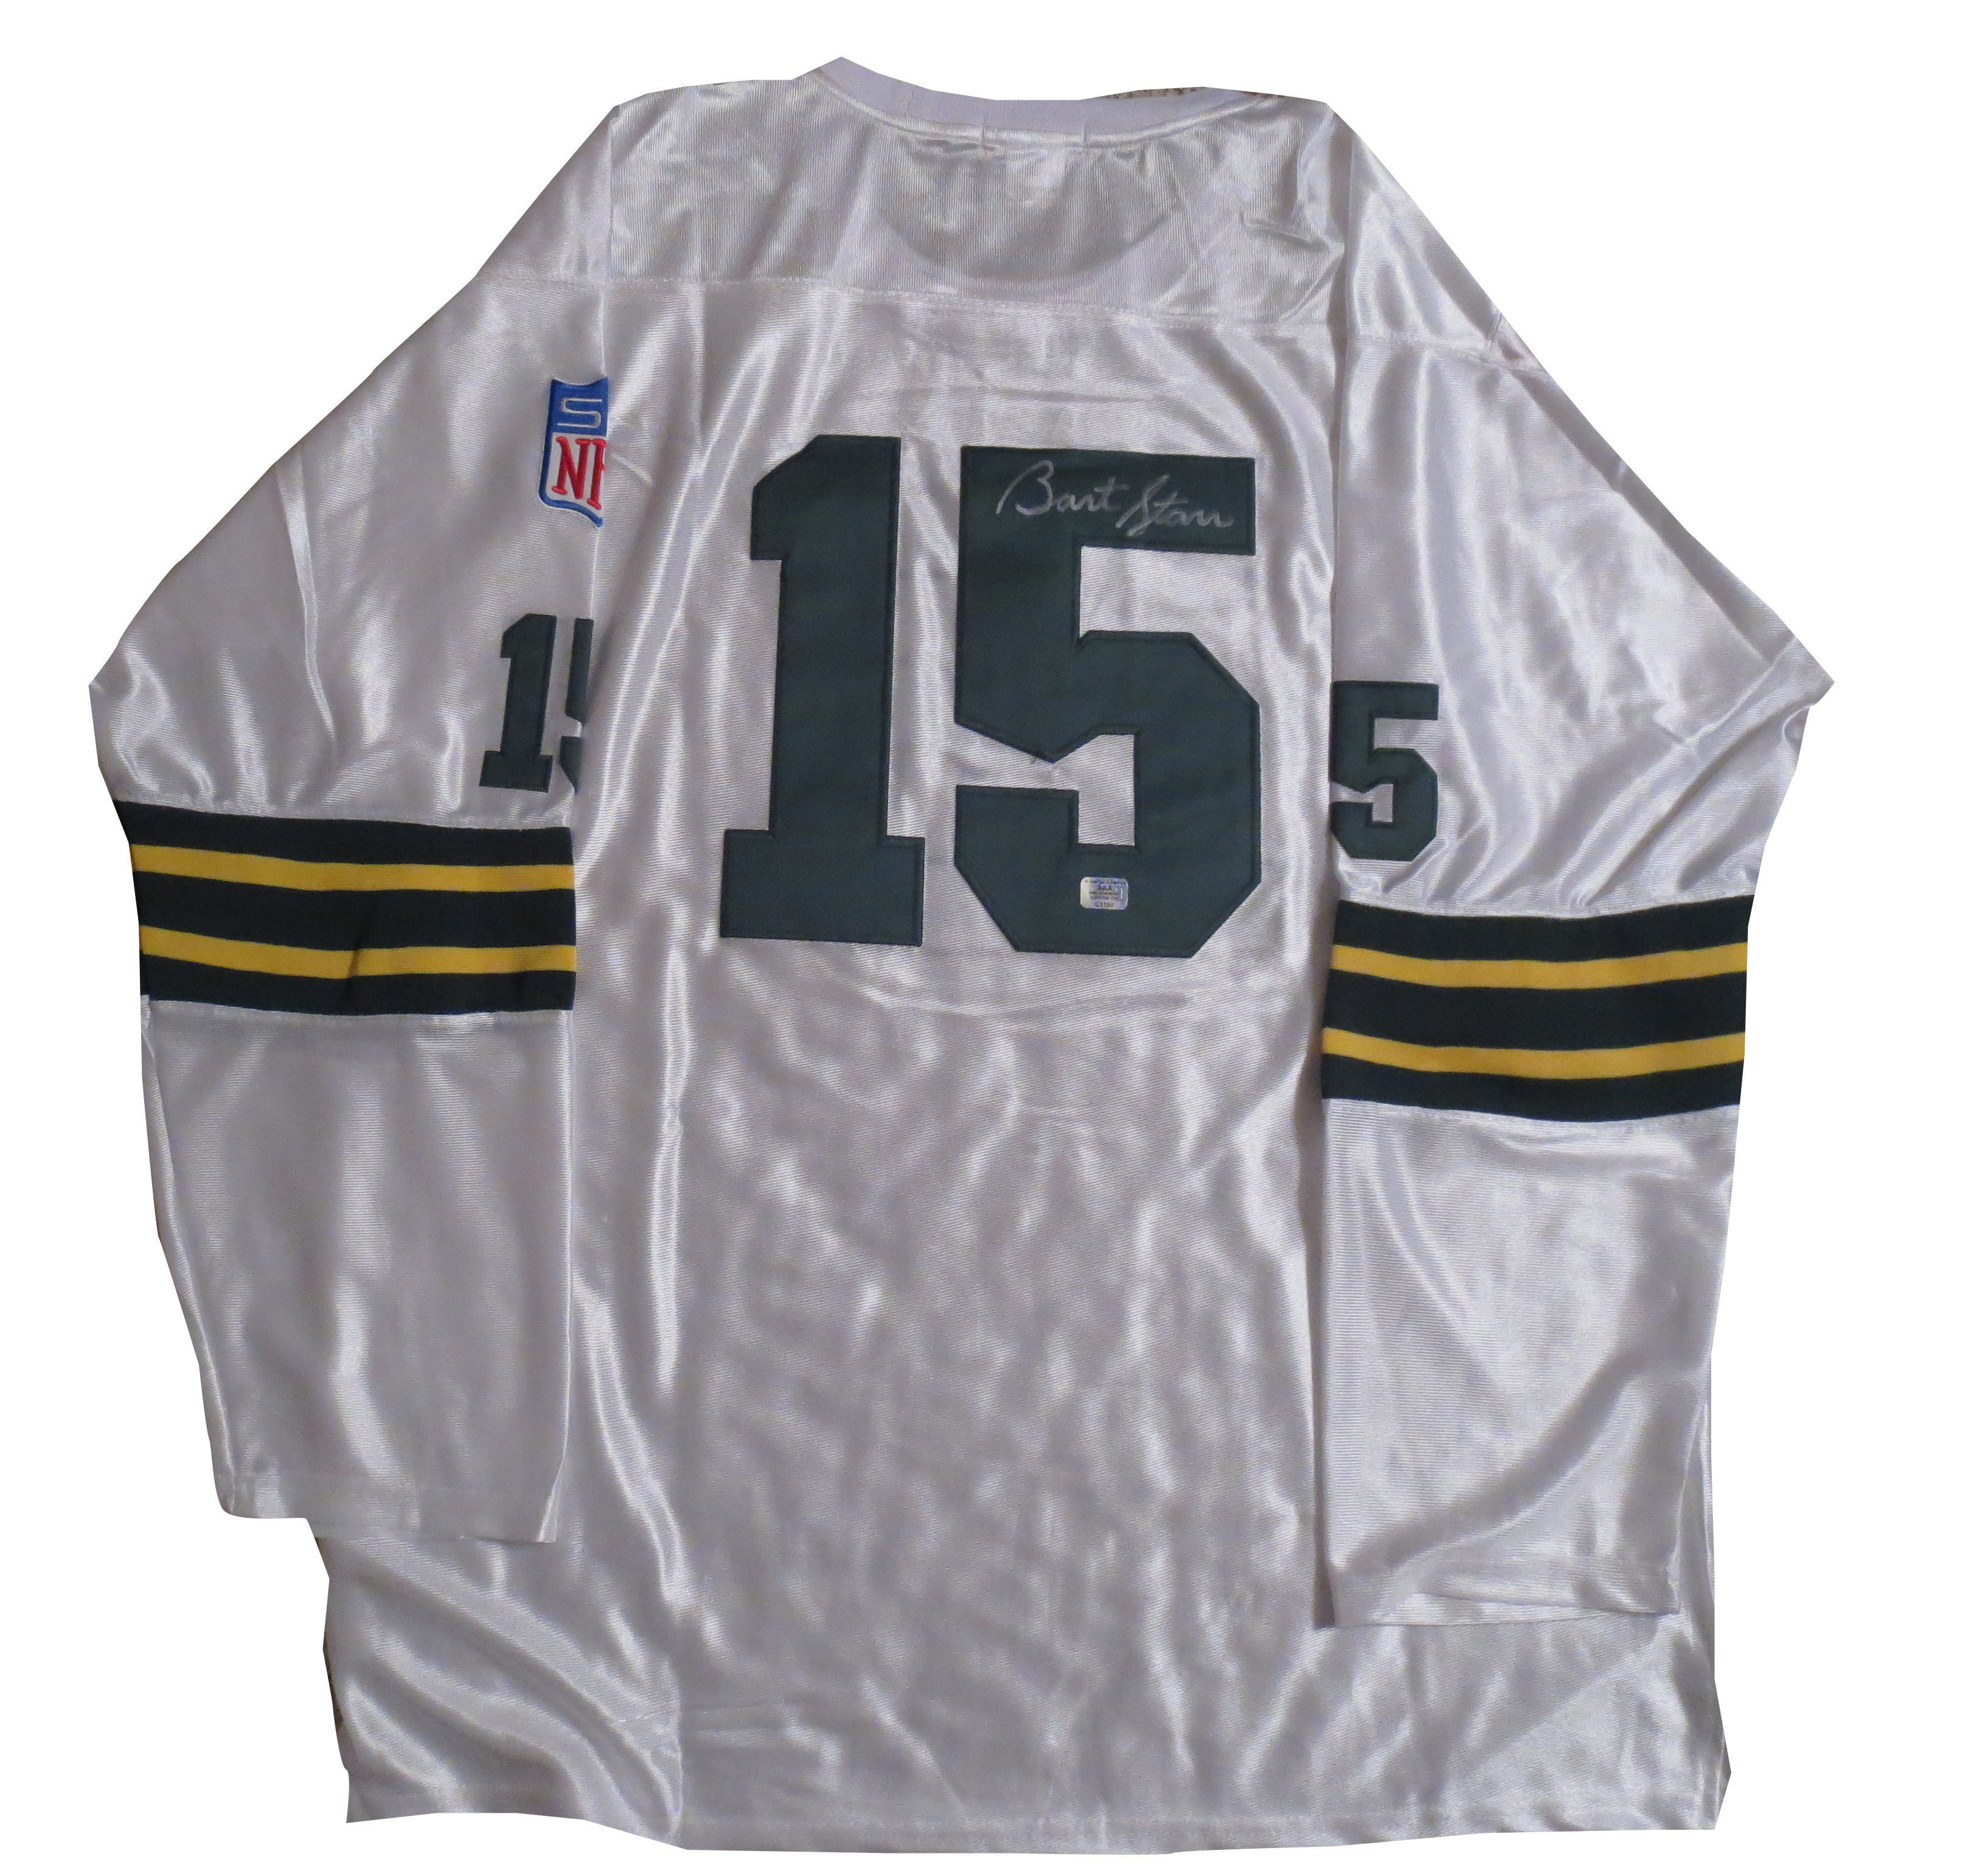 Bart Starr Signed Packers Jersey from Powers Autographs  supplier